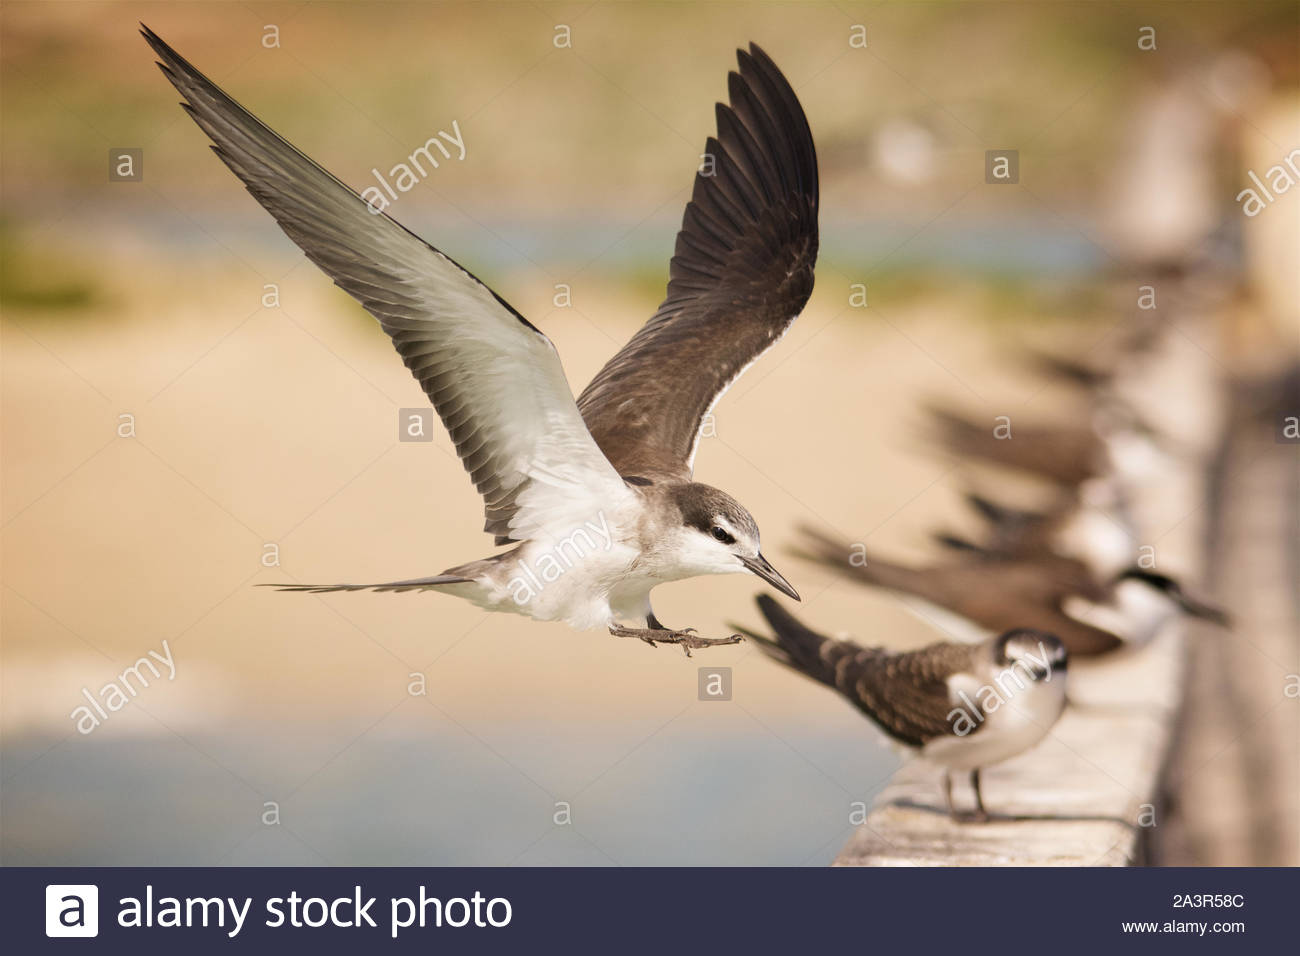 A juvenile Bridled Tern coming in to land alongside a row of other Bridled Terns at Penguin Island, Western Australia Stock Photo